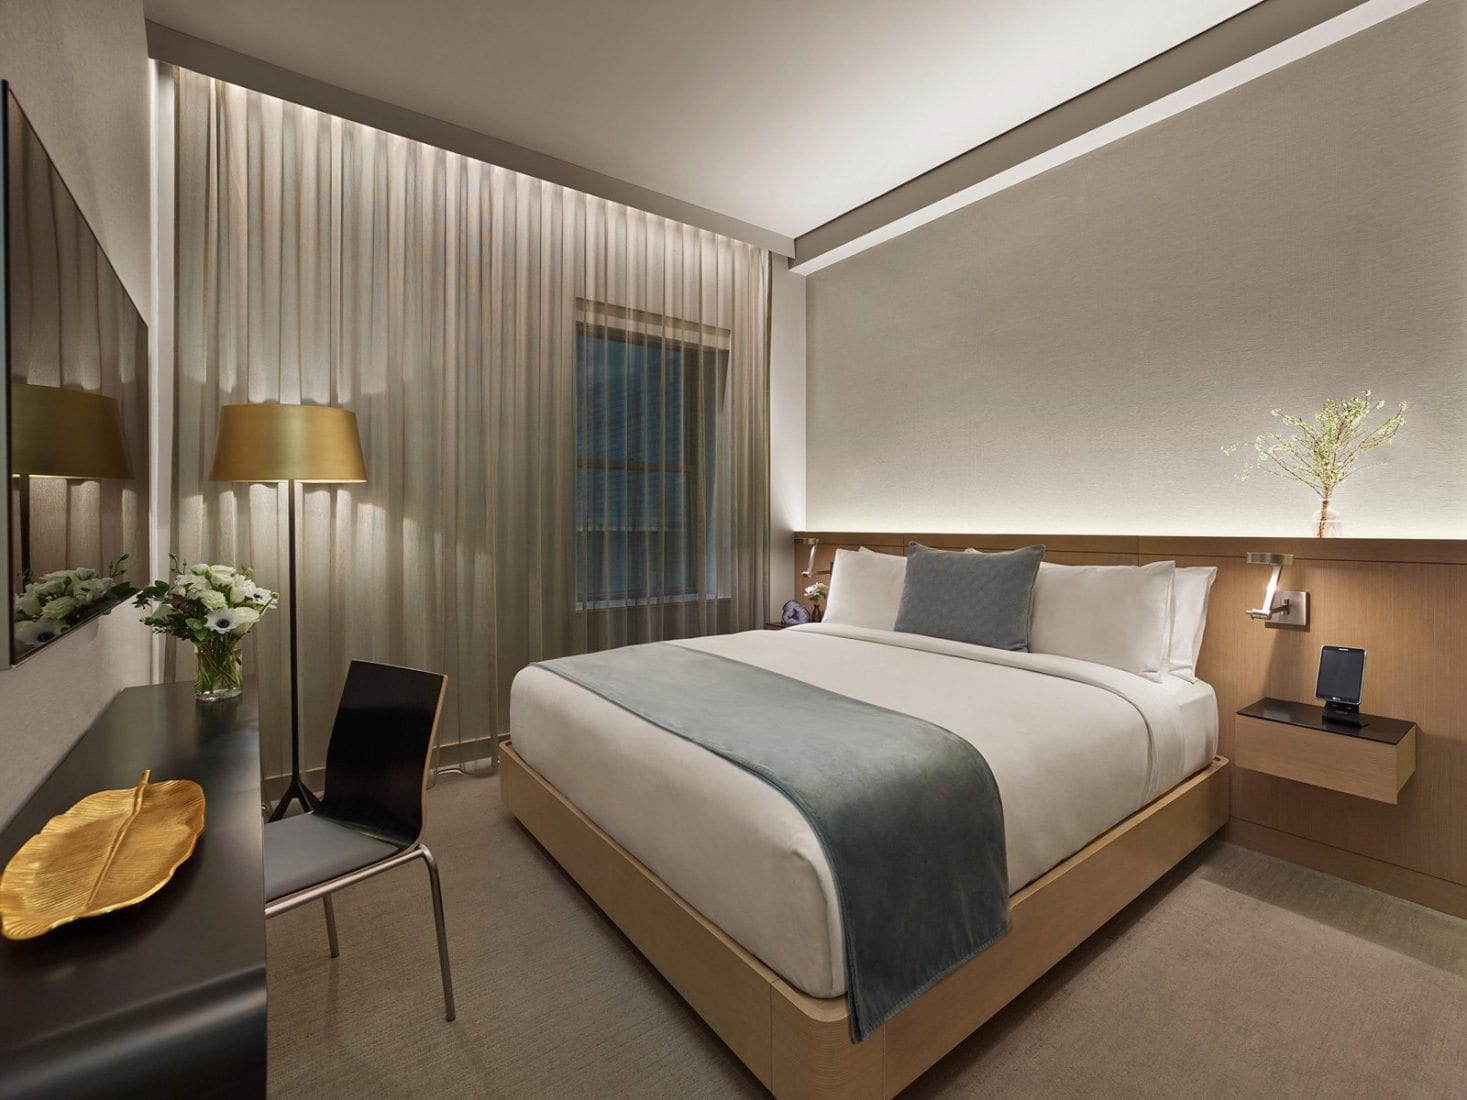 Superior Hotel Rooms In Times Square Nyc The